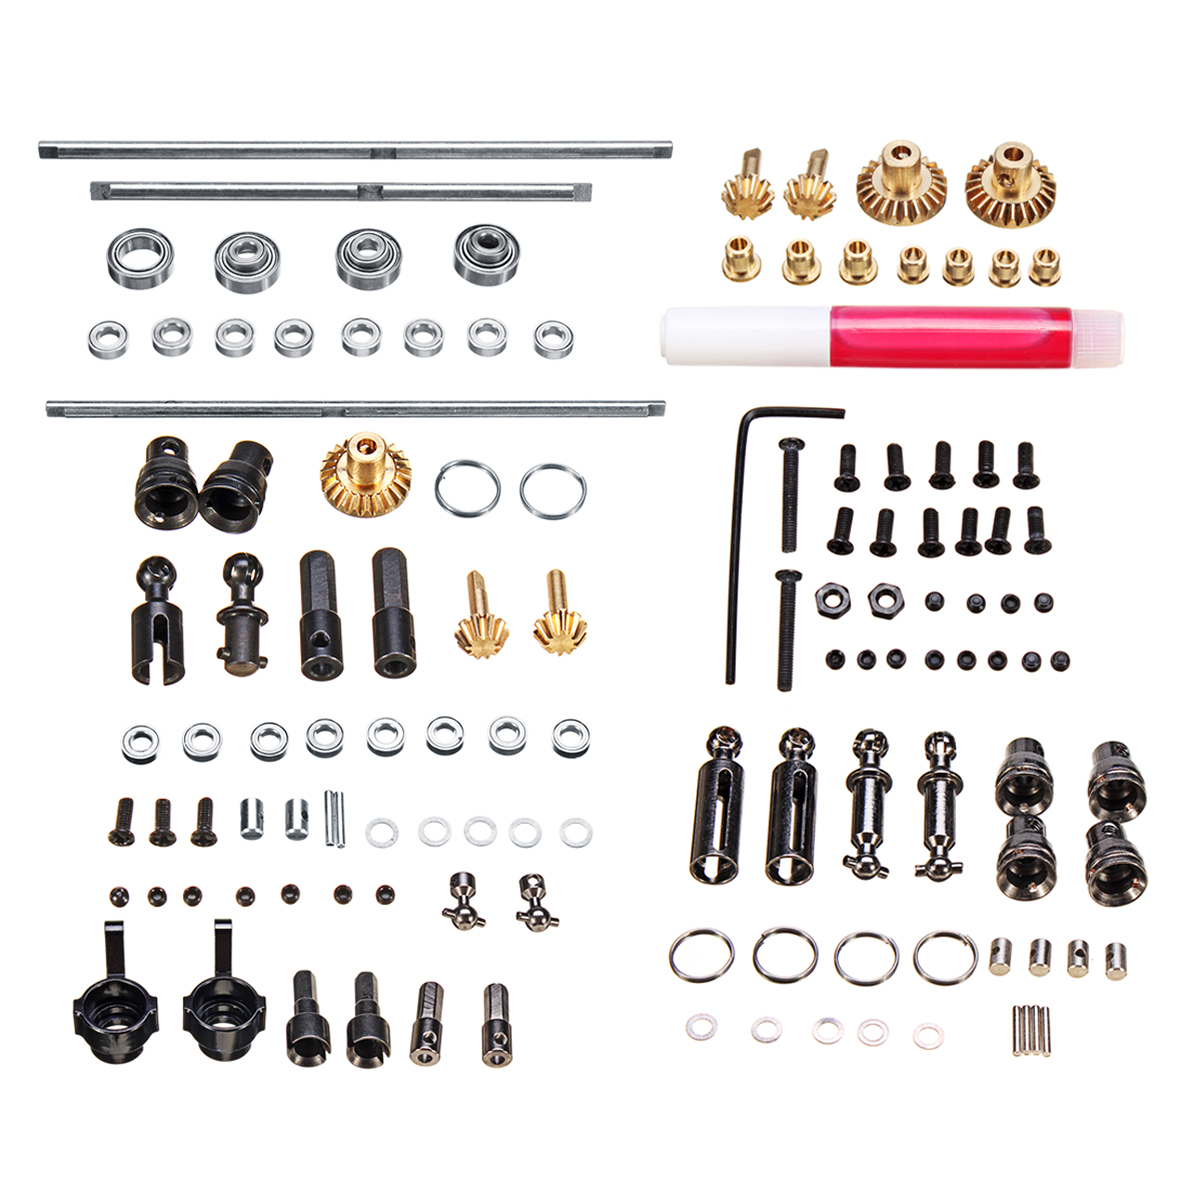 цена на Upgrade Metal OP Accessory Set DIY Spare Parts For WPL 1/16 6WD RC Car Military Truck Easy to Install Durable Metal & Plastic